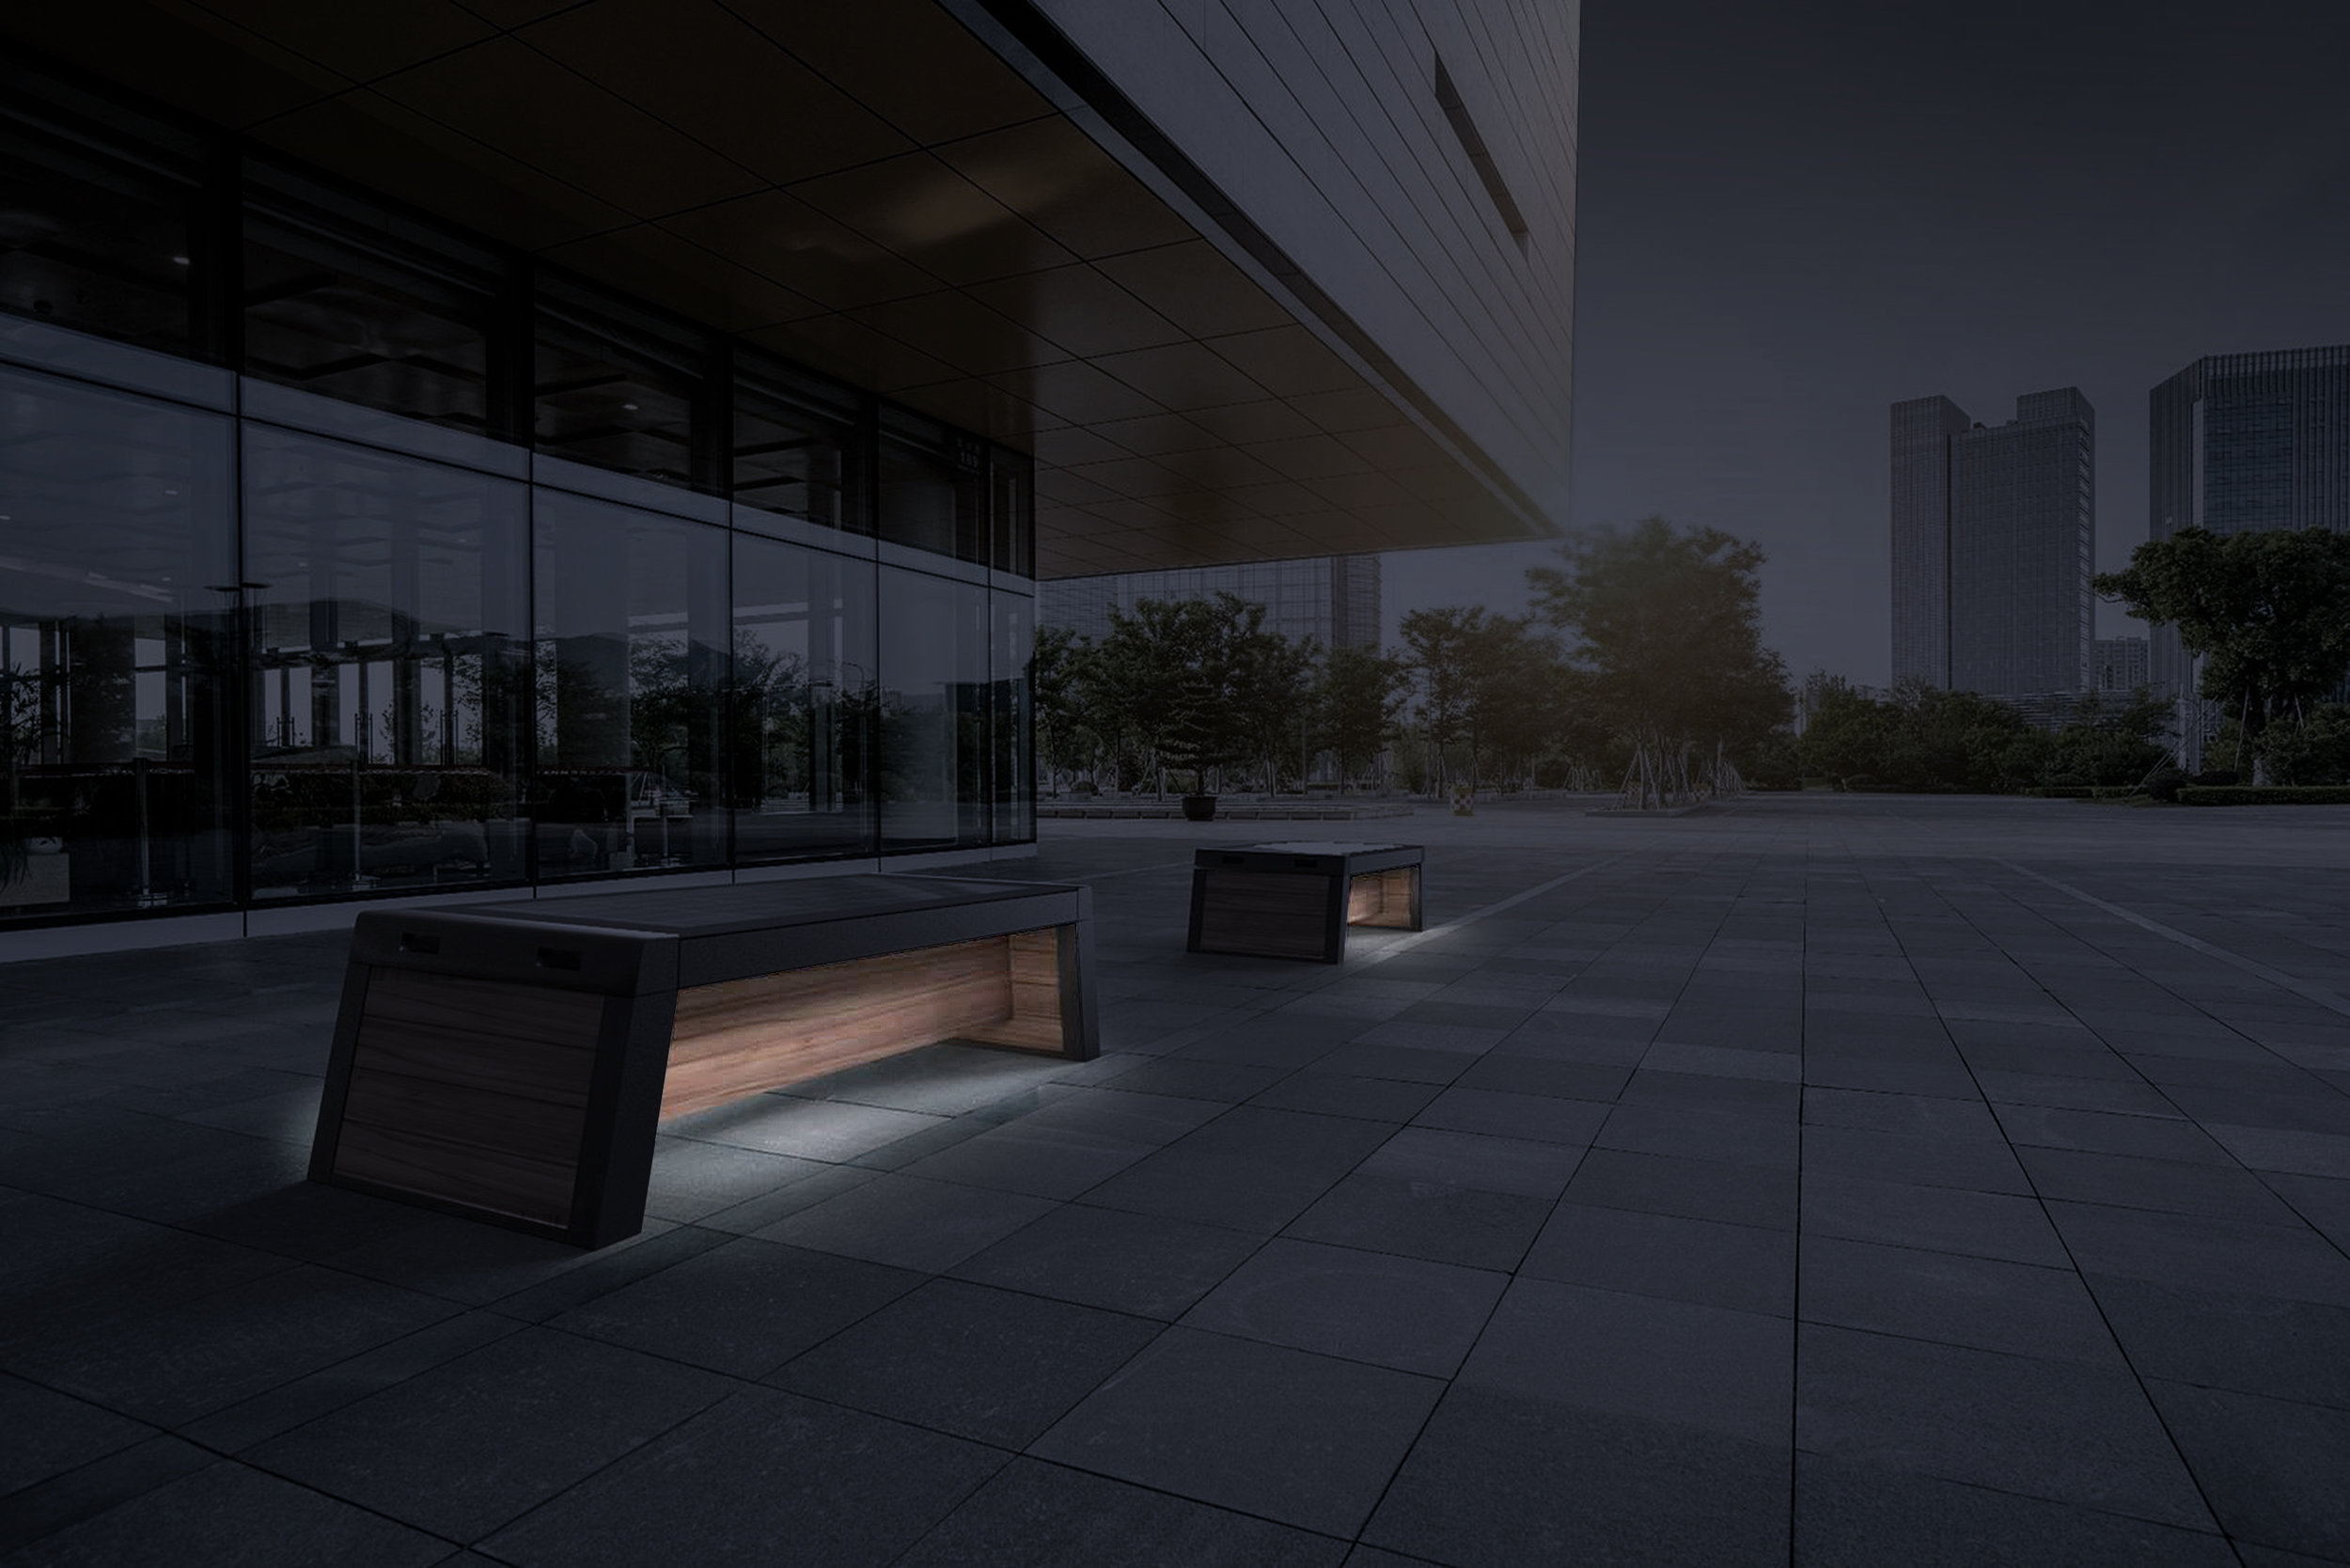 thesolarsmartbench - A versatile illuminated outdoor bench